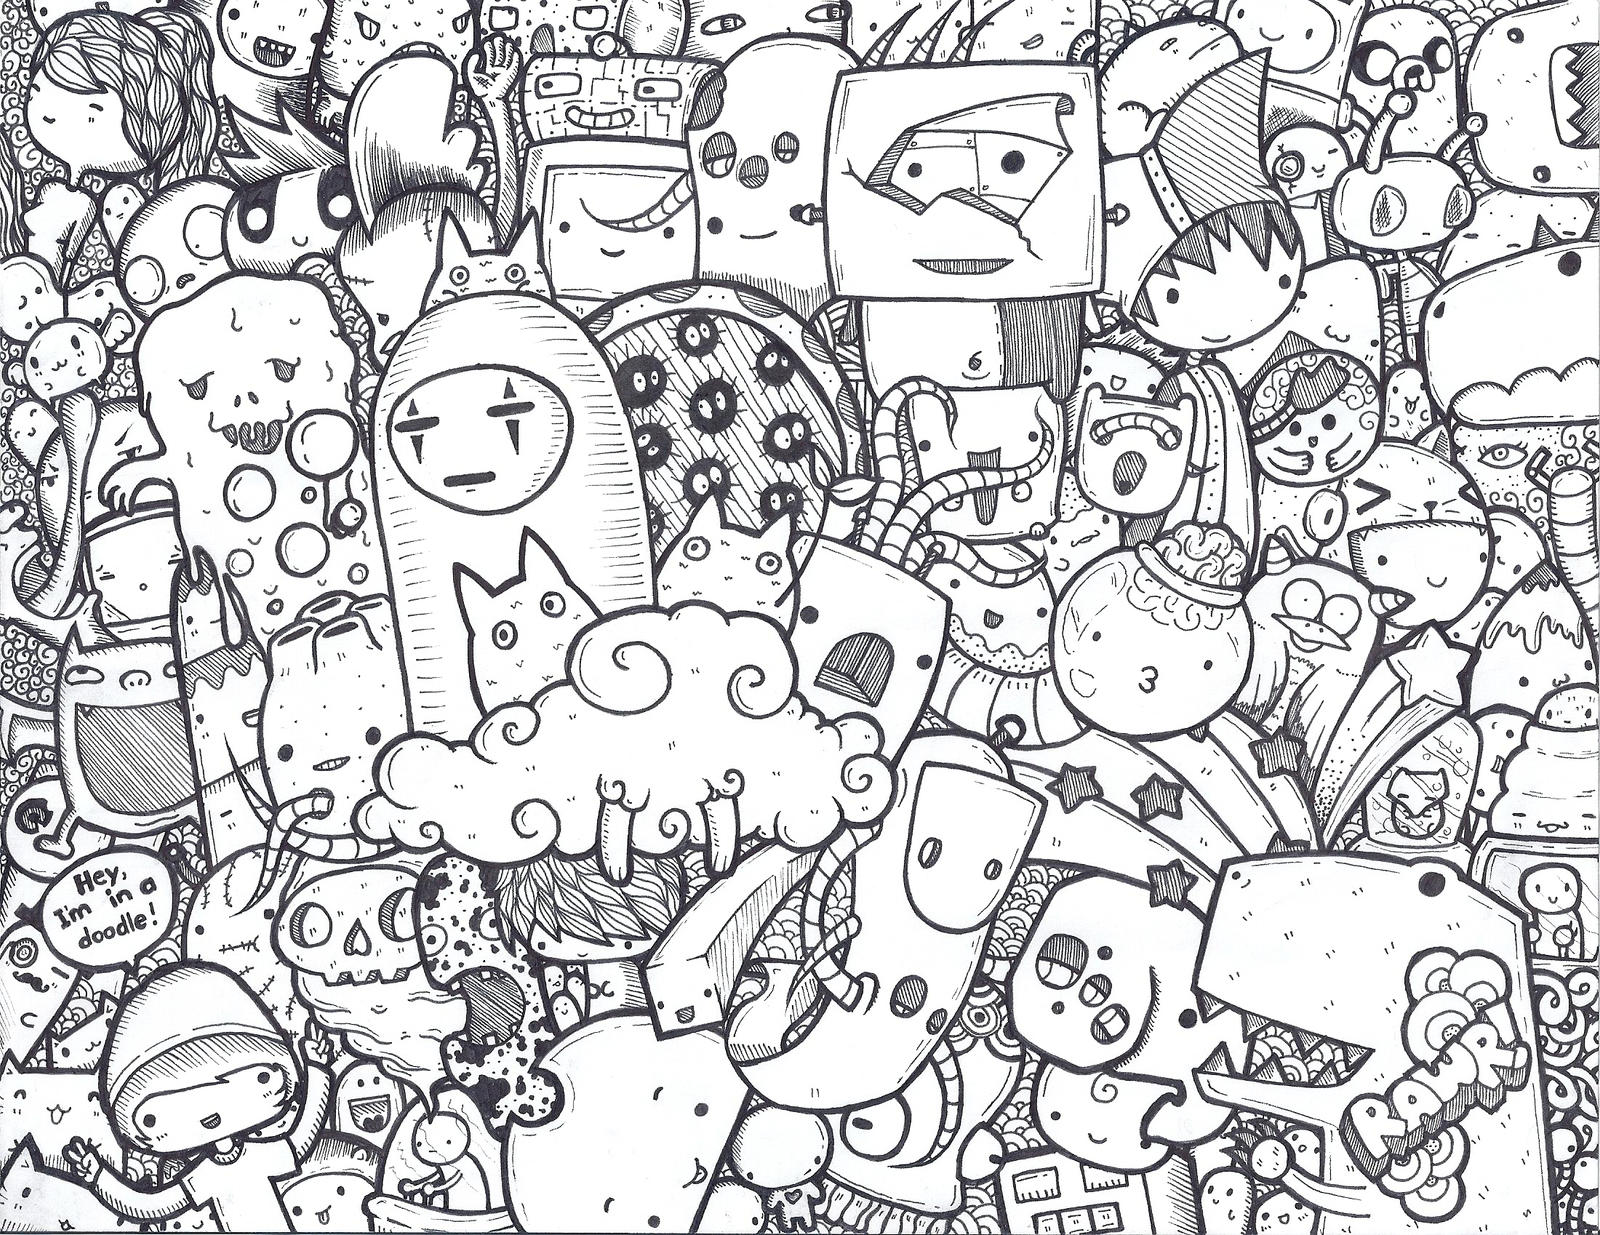 Coloring Pages 4 U coloringpages4u  Twitter